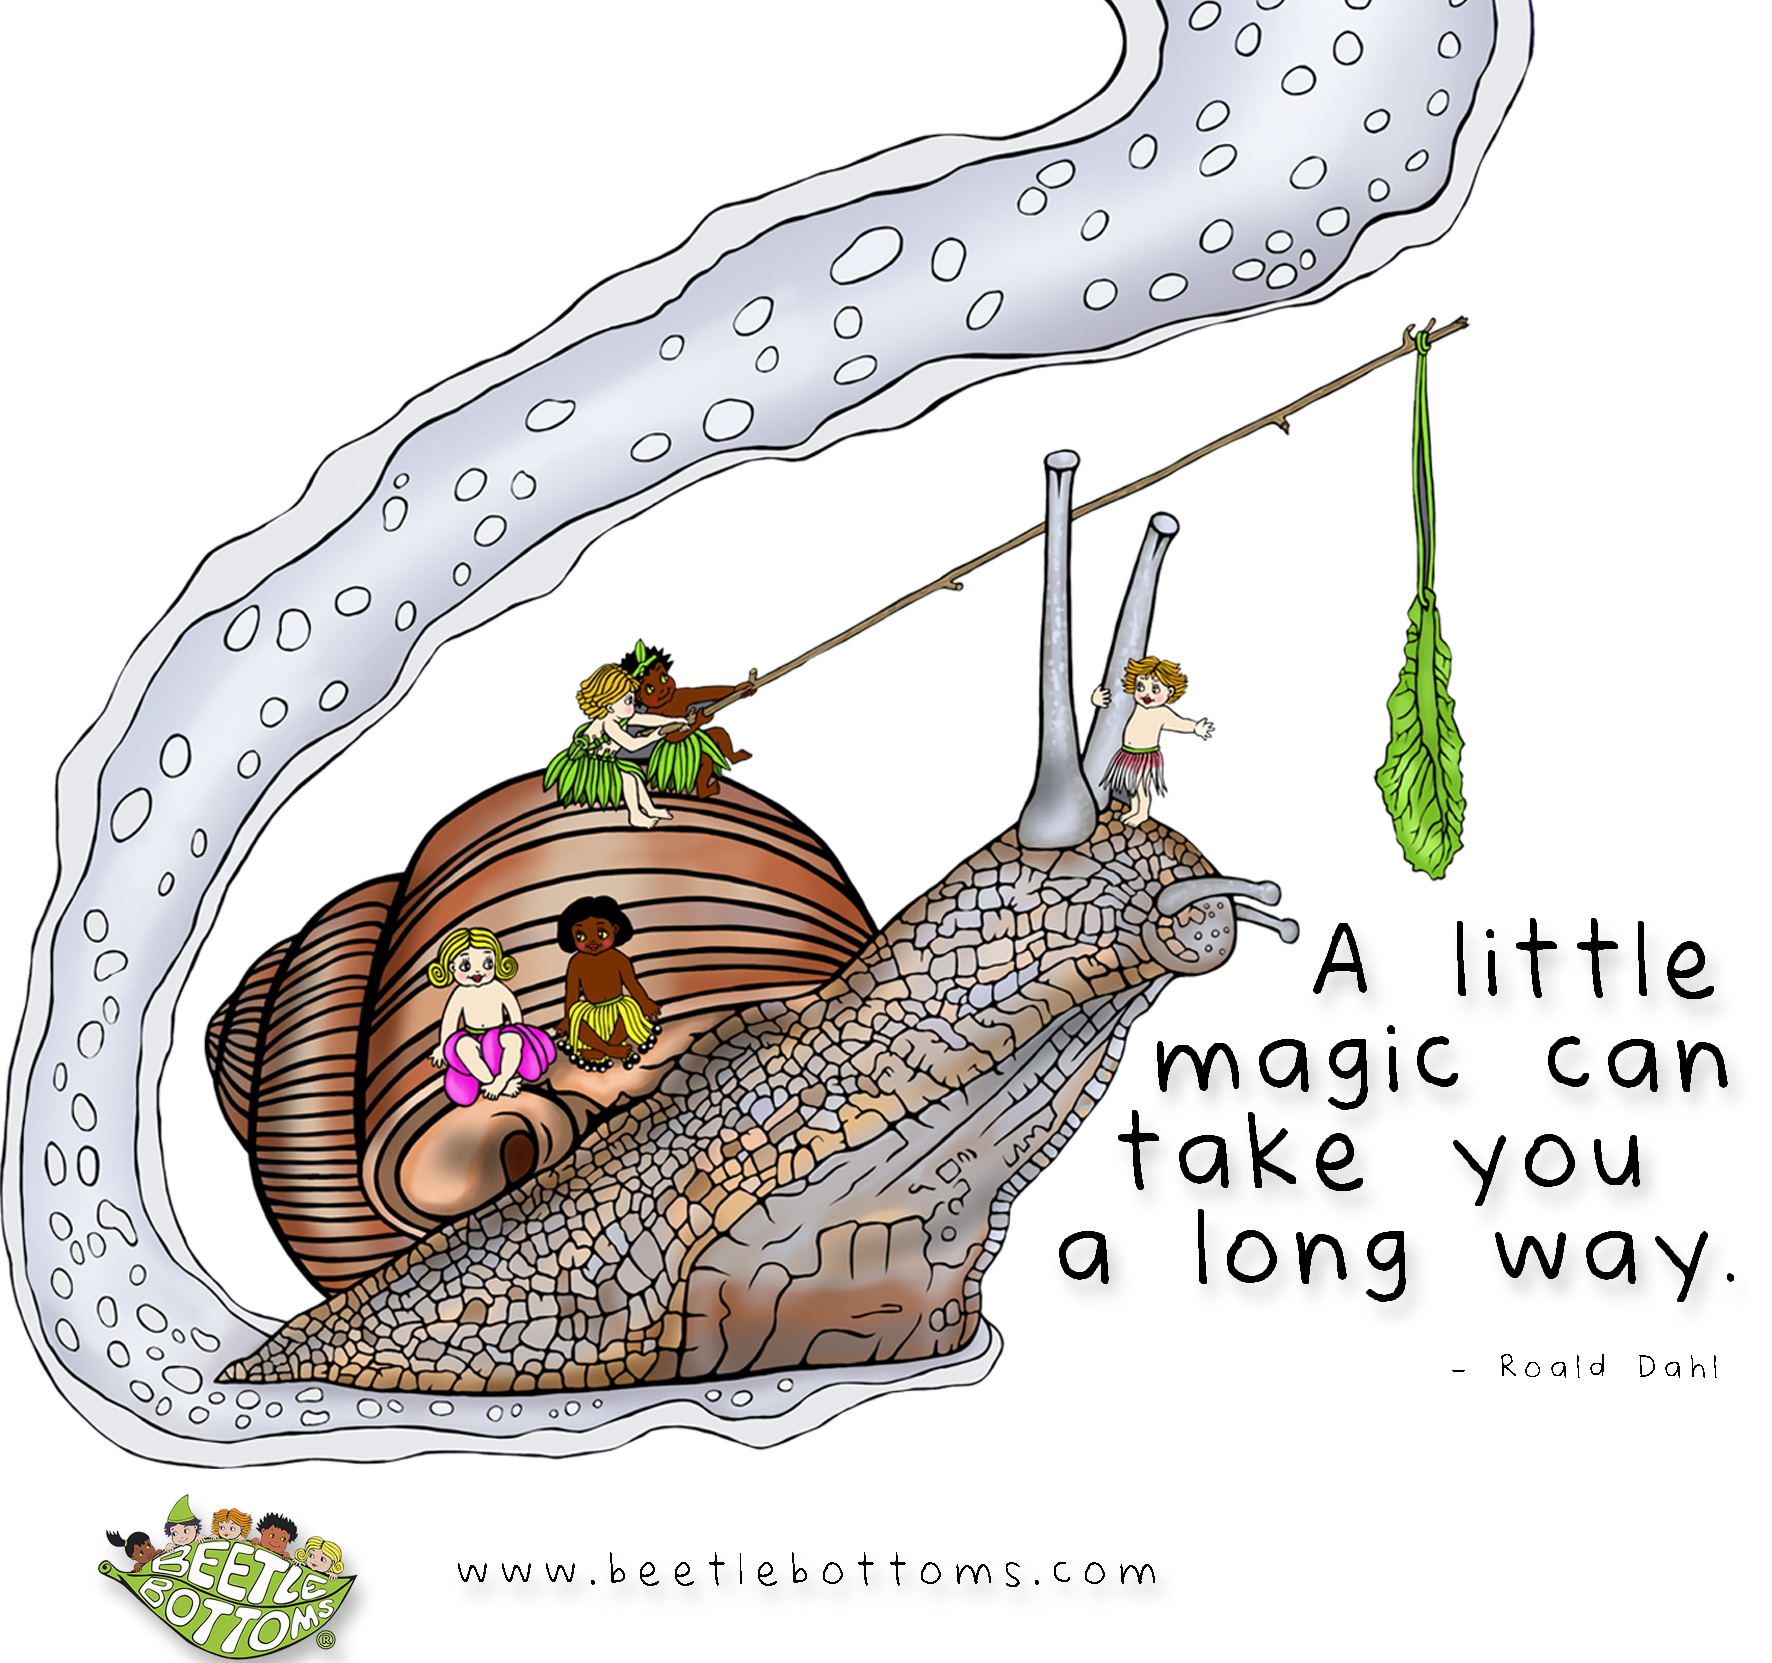 A little magic can take you a long way, Beetle Bottoms illustrated by NZ artist Fiona Whyte